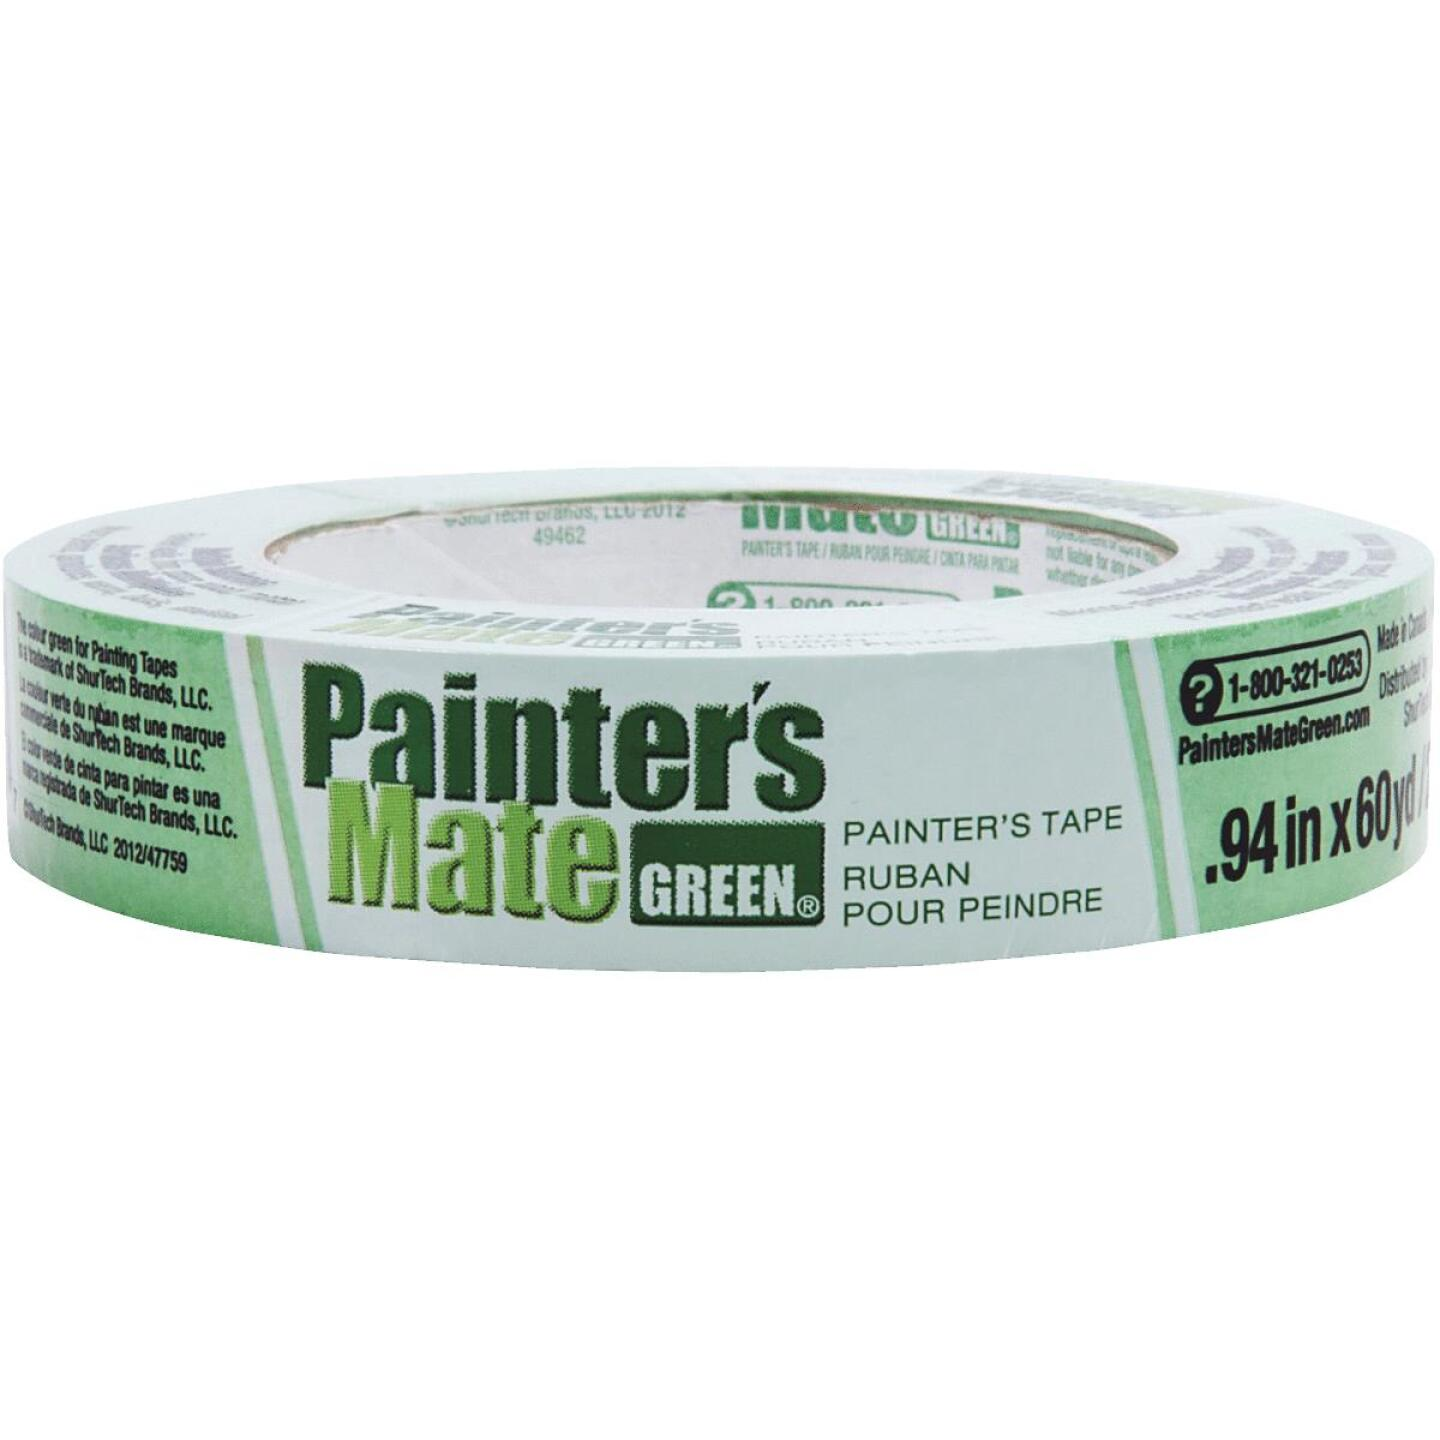 Painter's Mate Green 0.94 In. x 60 Yd. Masking Tape Image 1